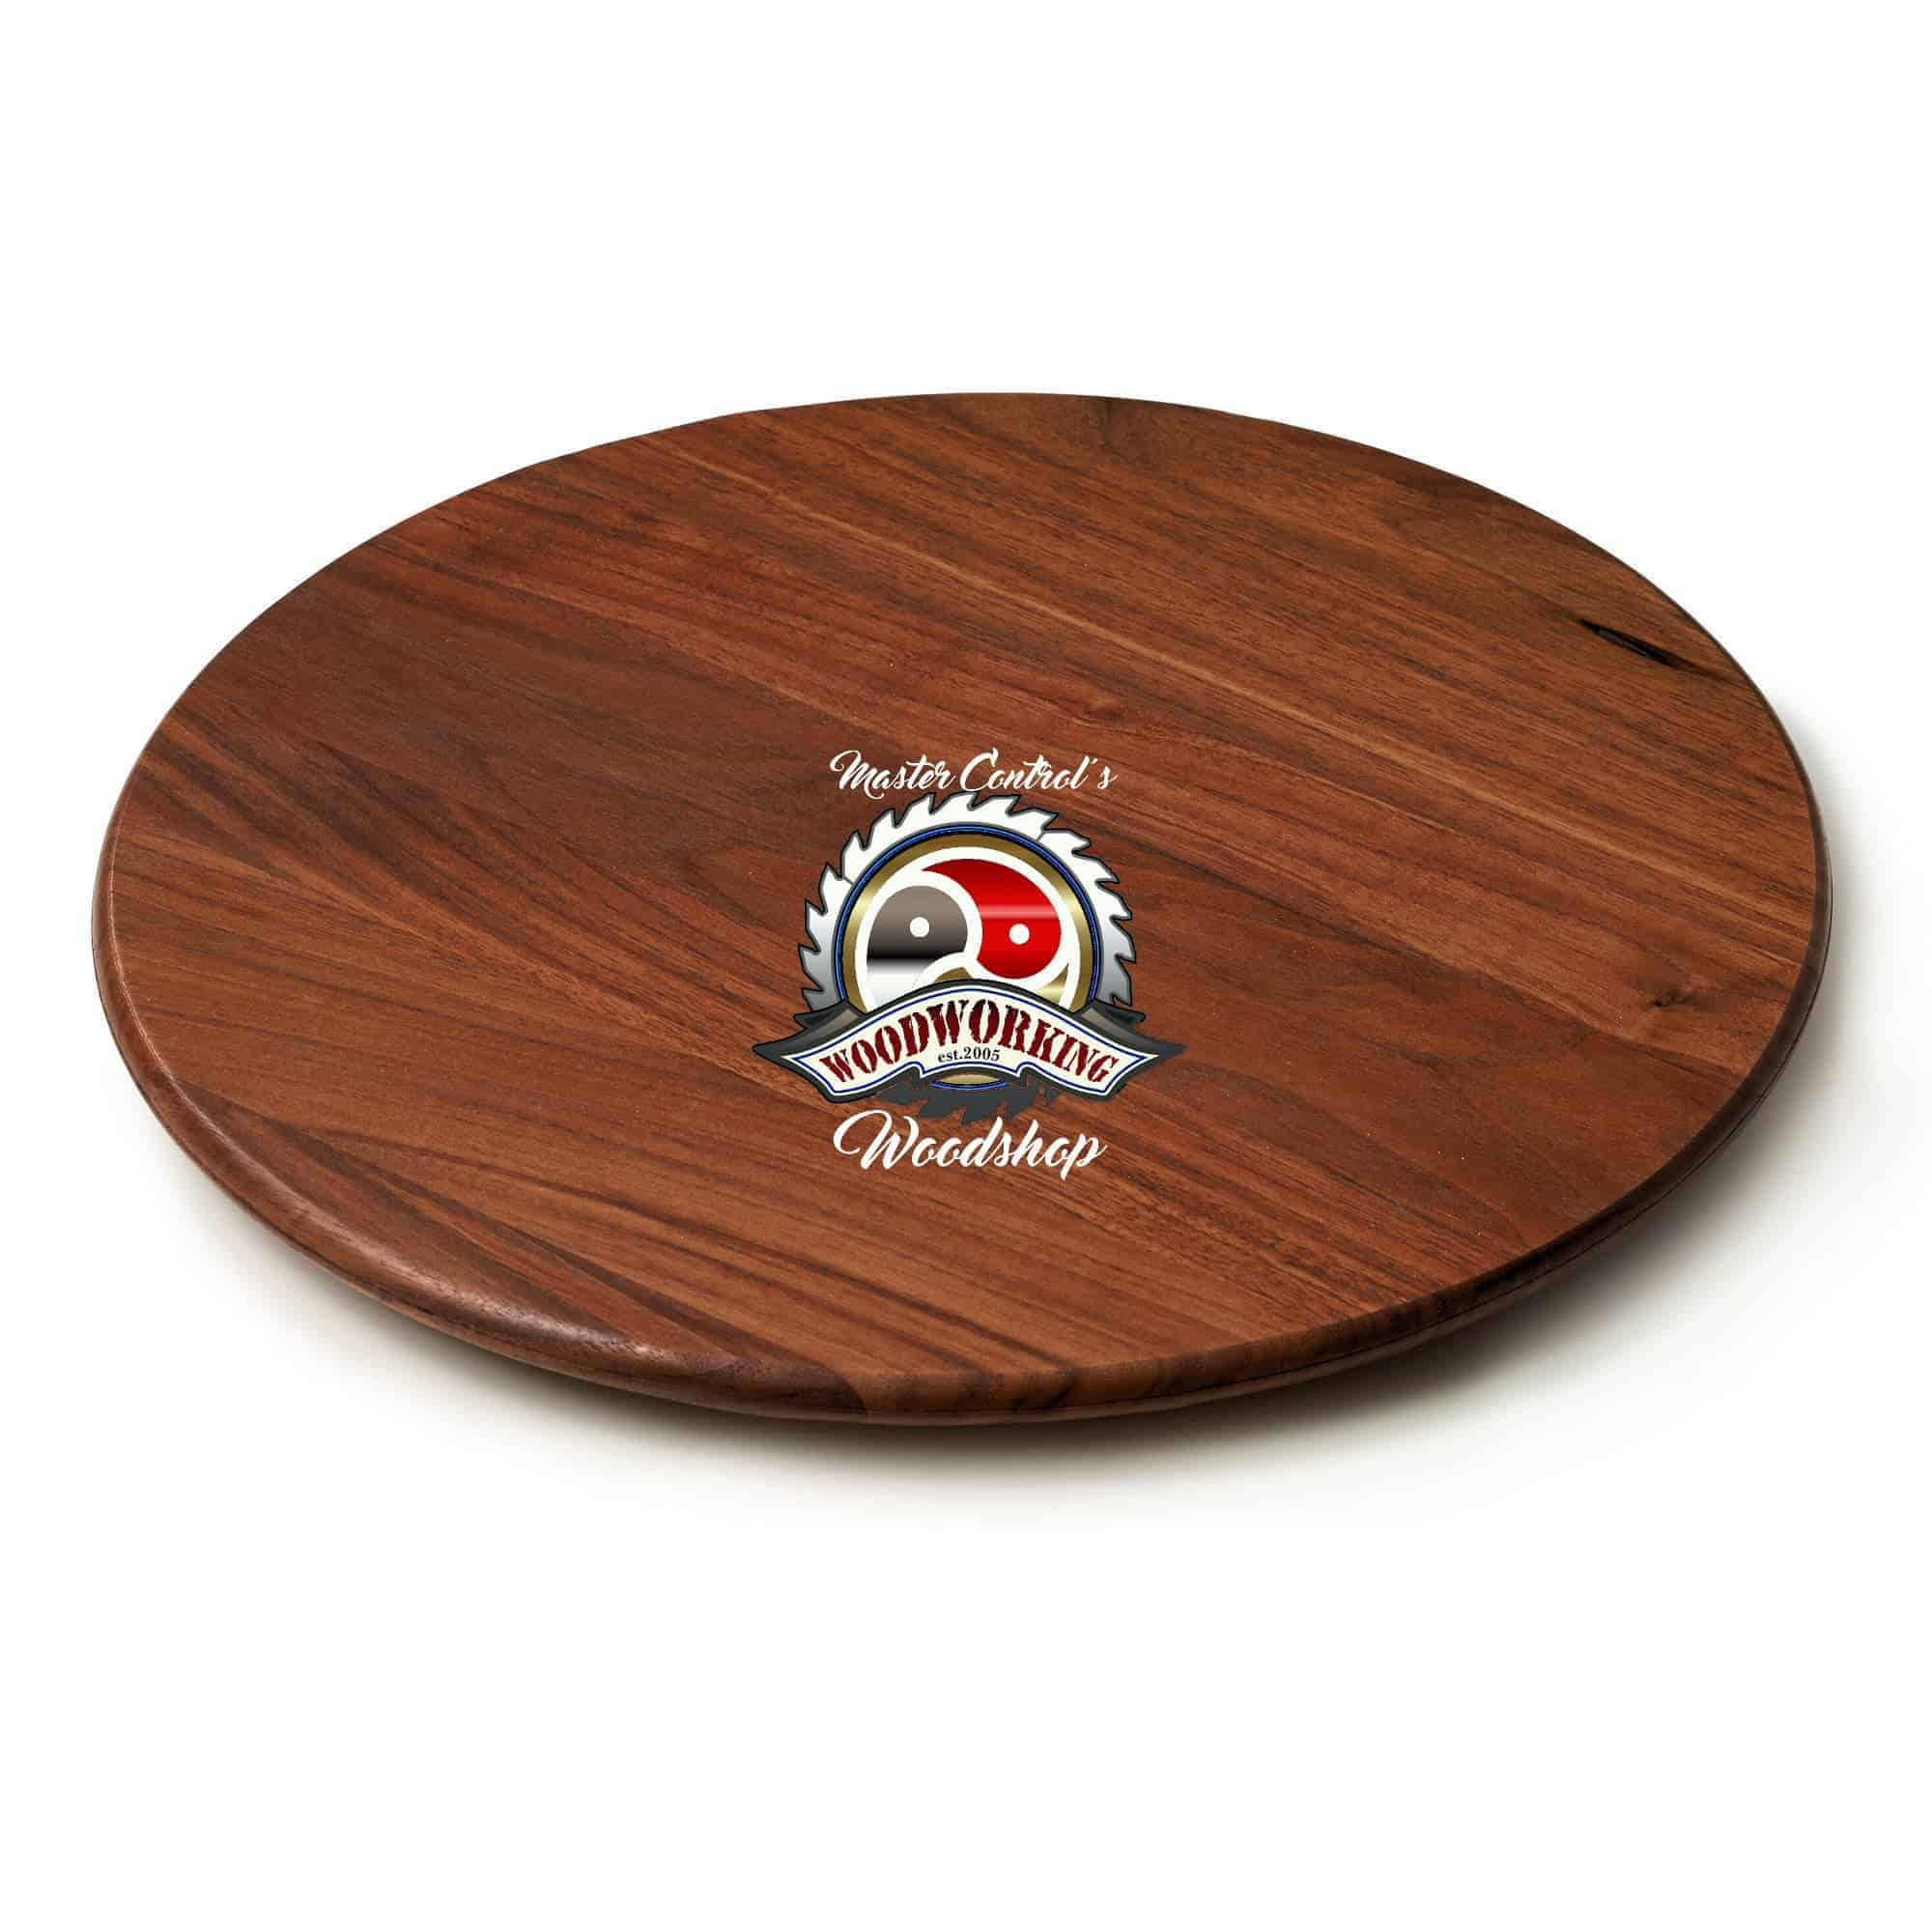 Hardwood Lazy Susan turntable - Single Hardwood Type | Sizes - 12, 15, 18, 20, 24, 28, 30, 36